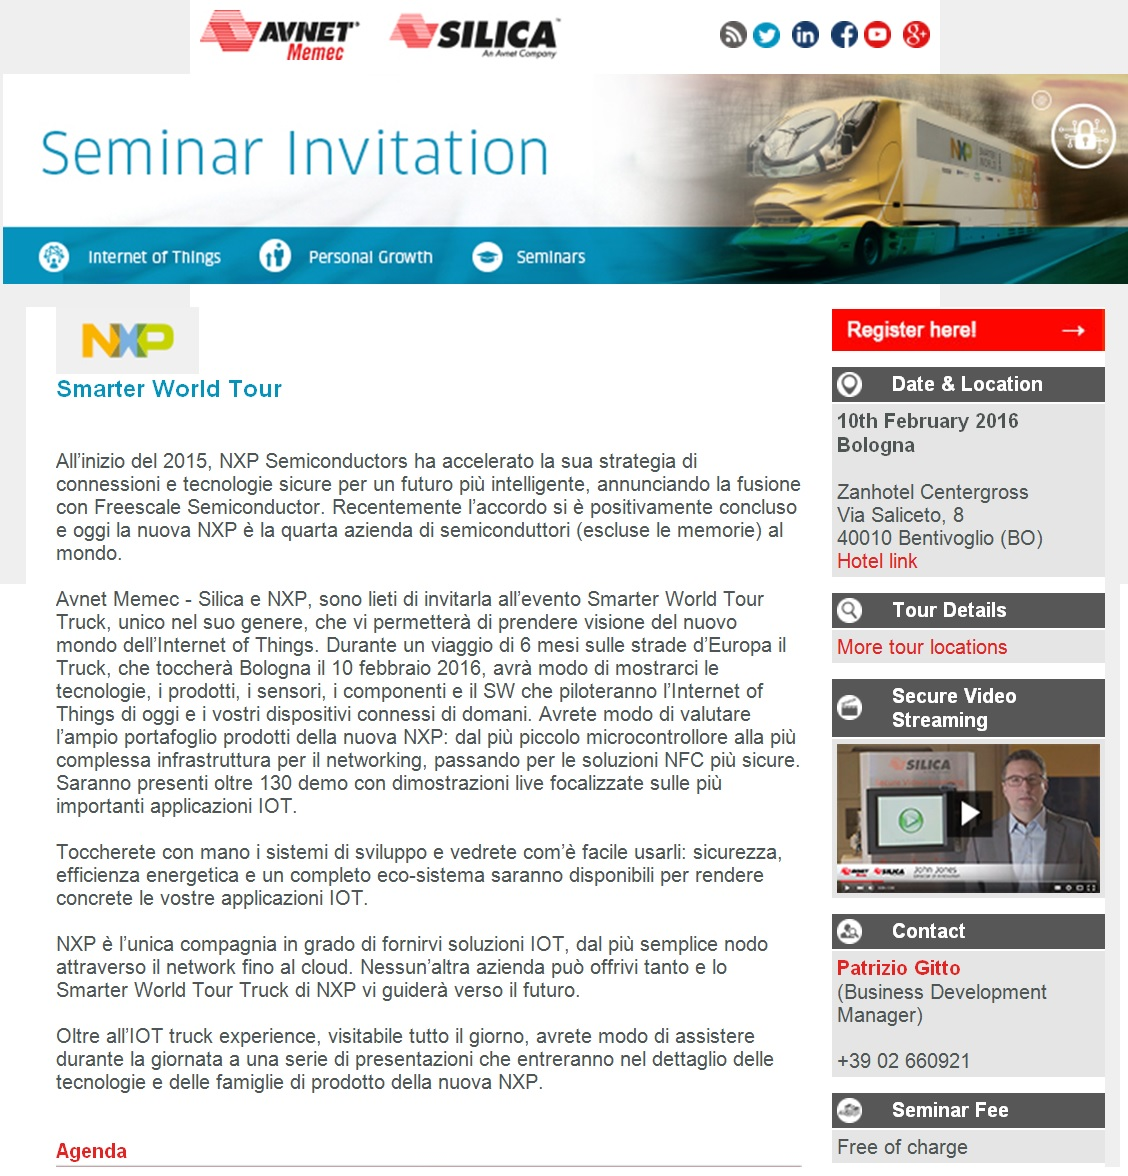 Avnet Memec - Silica | NXP Smarter World Tour Truck invitation - Italian advertising